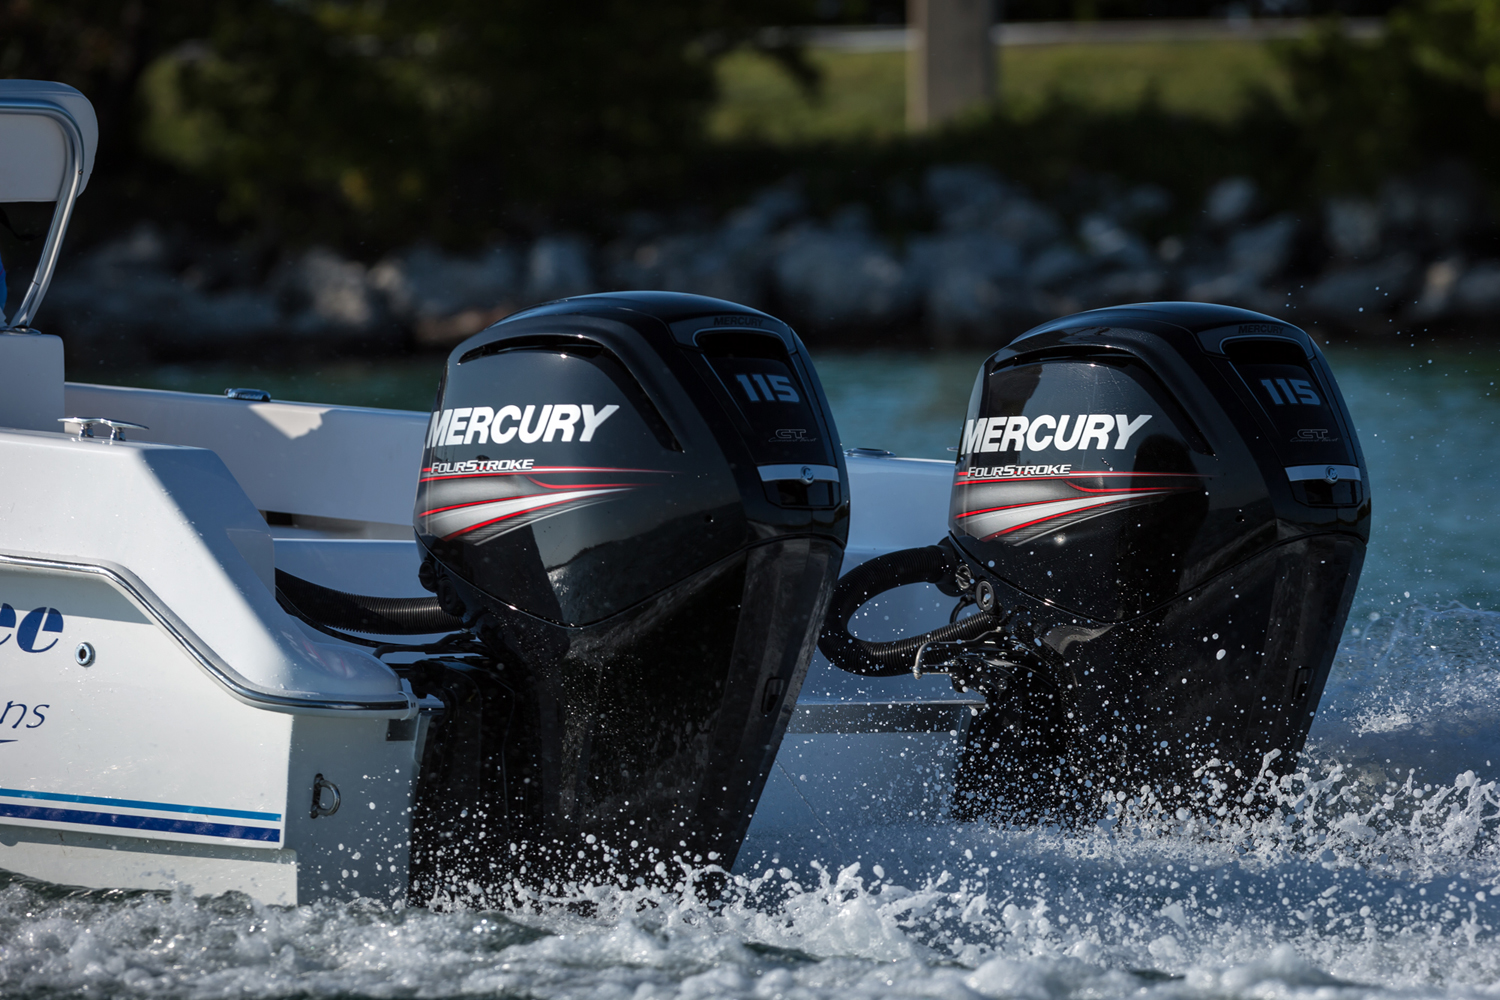 Merc Outboards on 75 Hp Mercury Outboard Parts Diagram